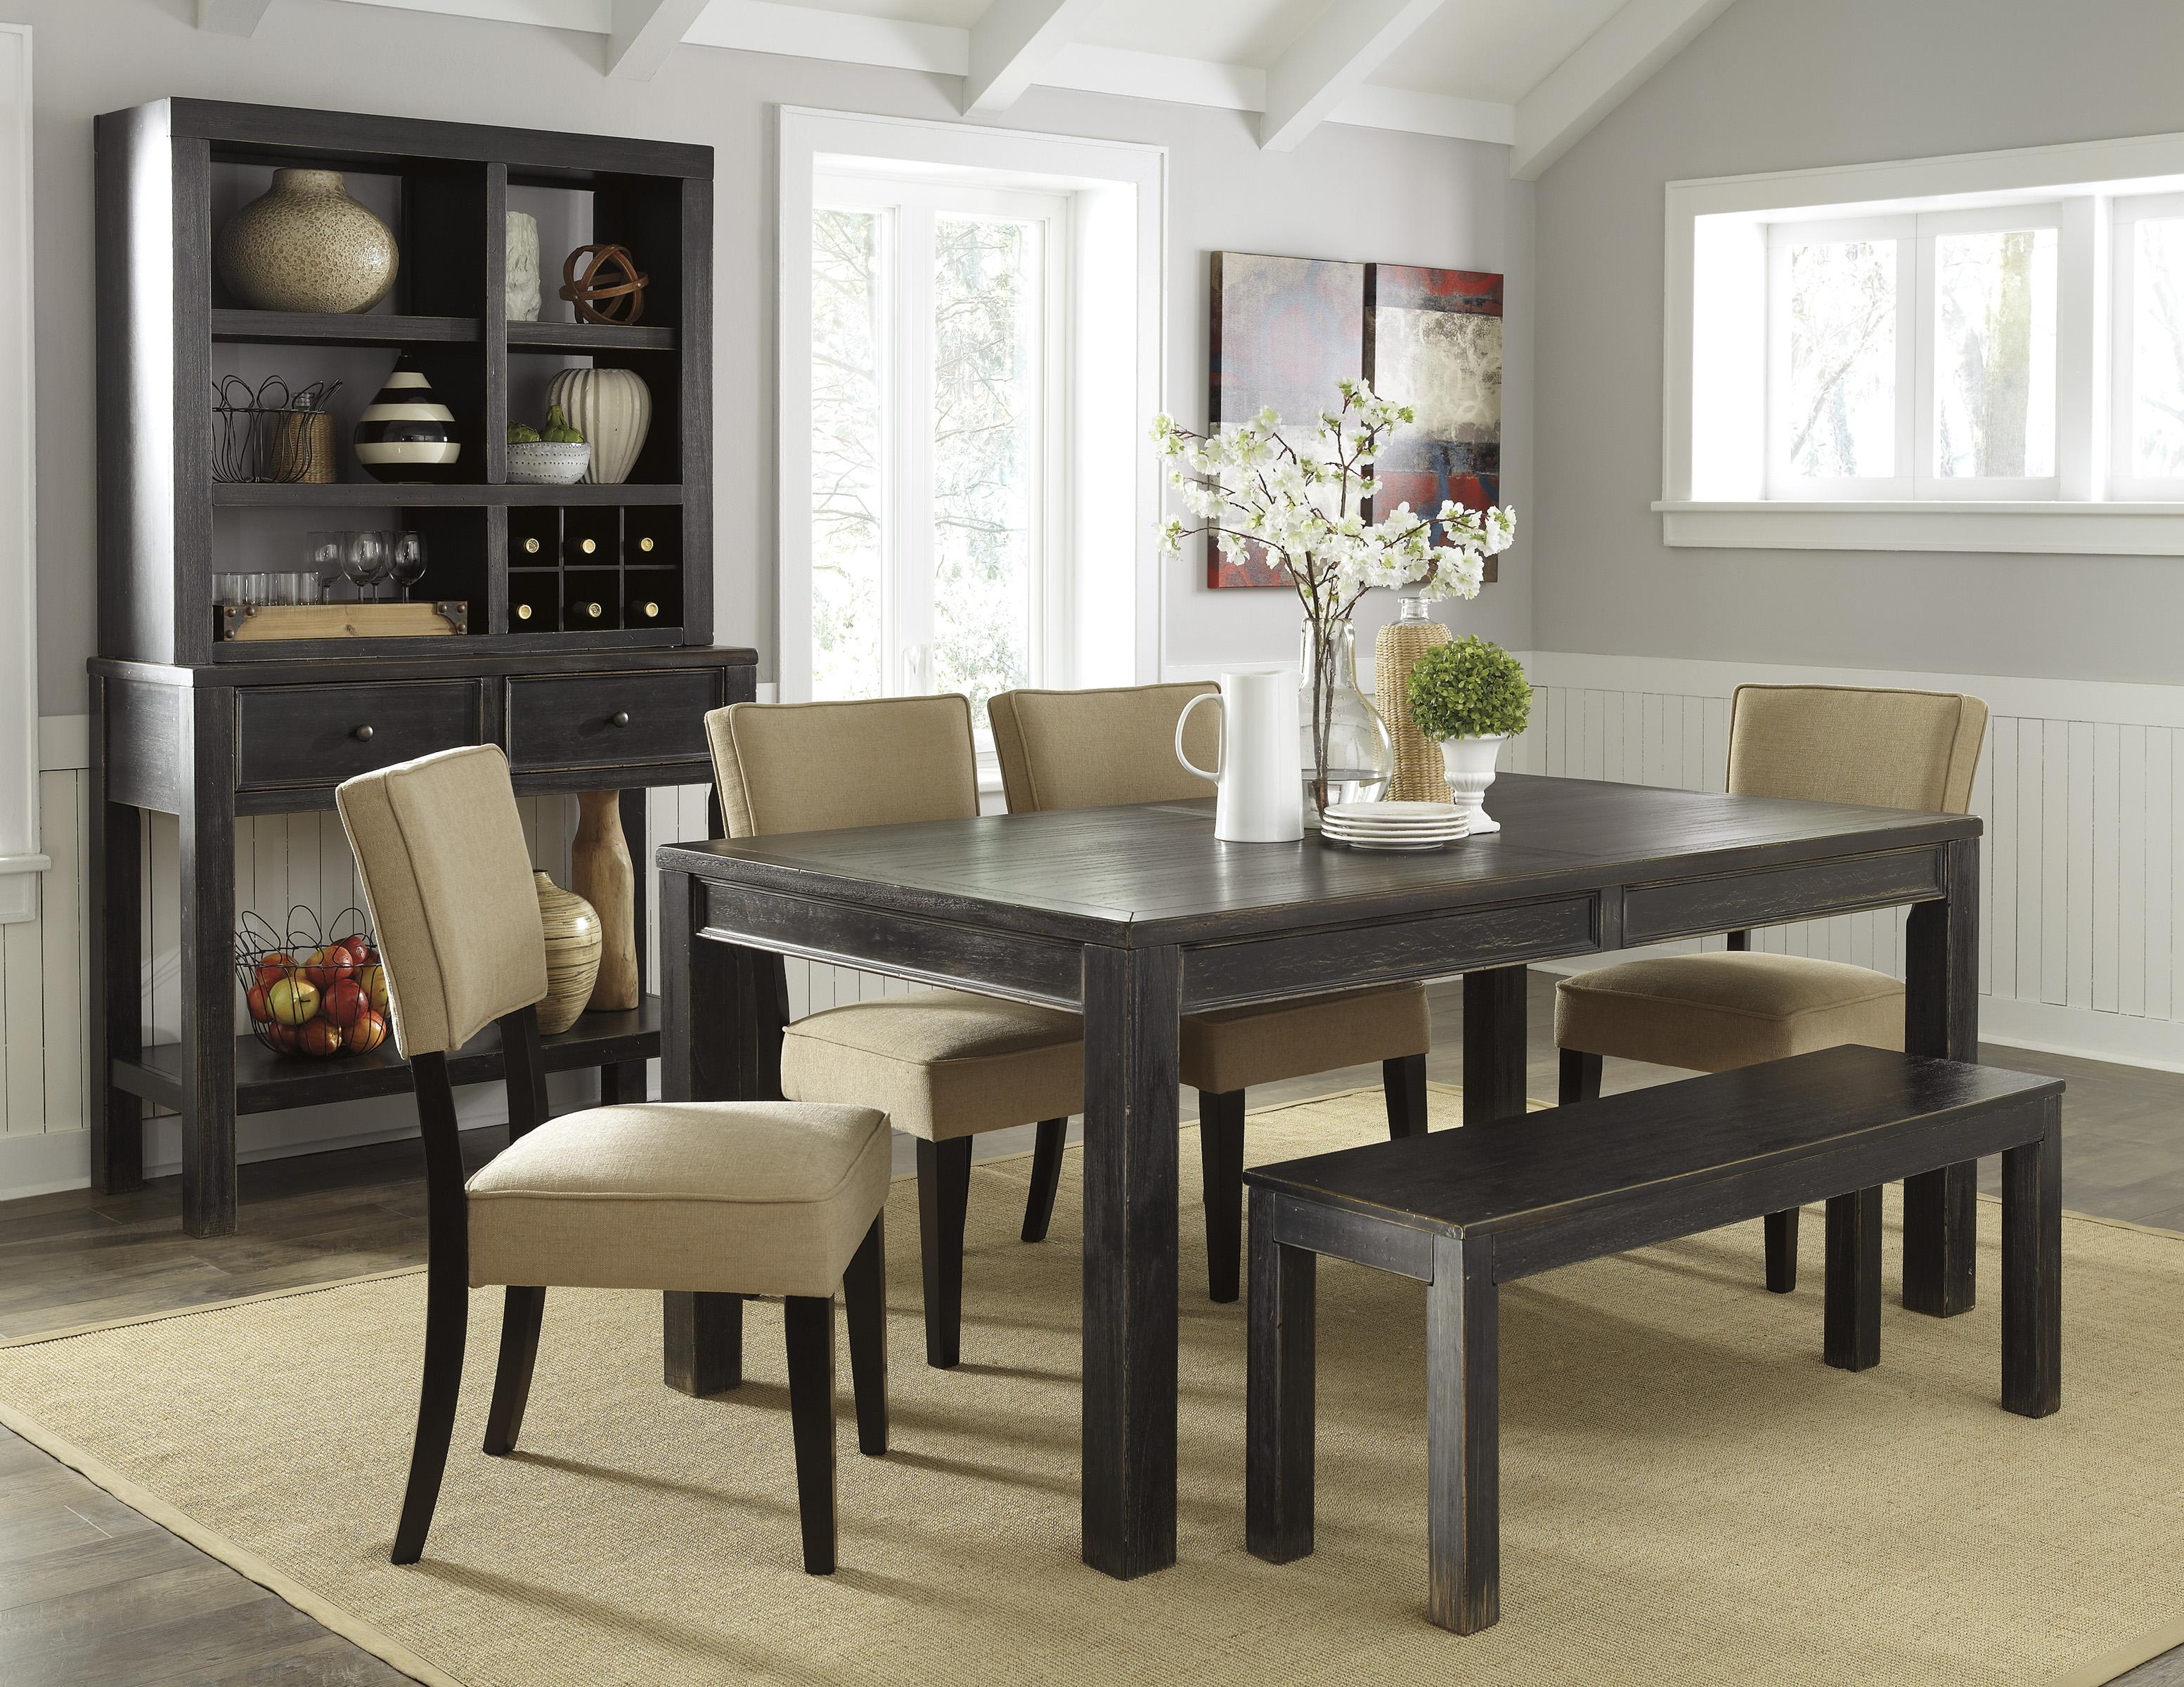 Signature Design by Ashley Gavelston Casual Dining Room Group - Item Number: D532 Dining Room Group 6